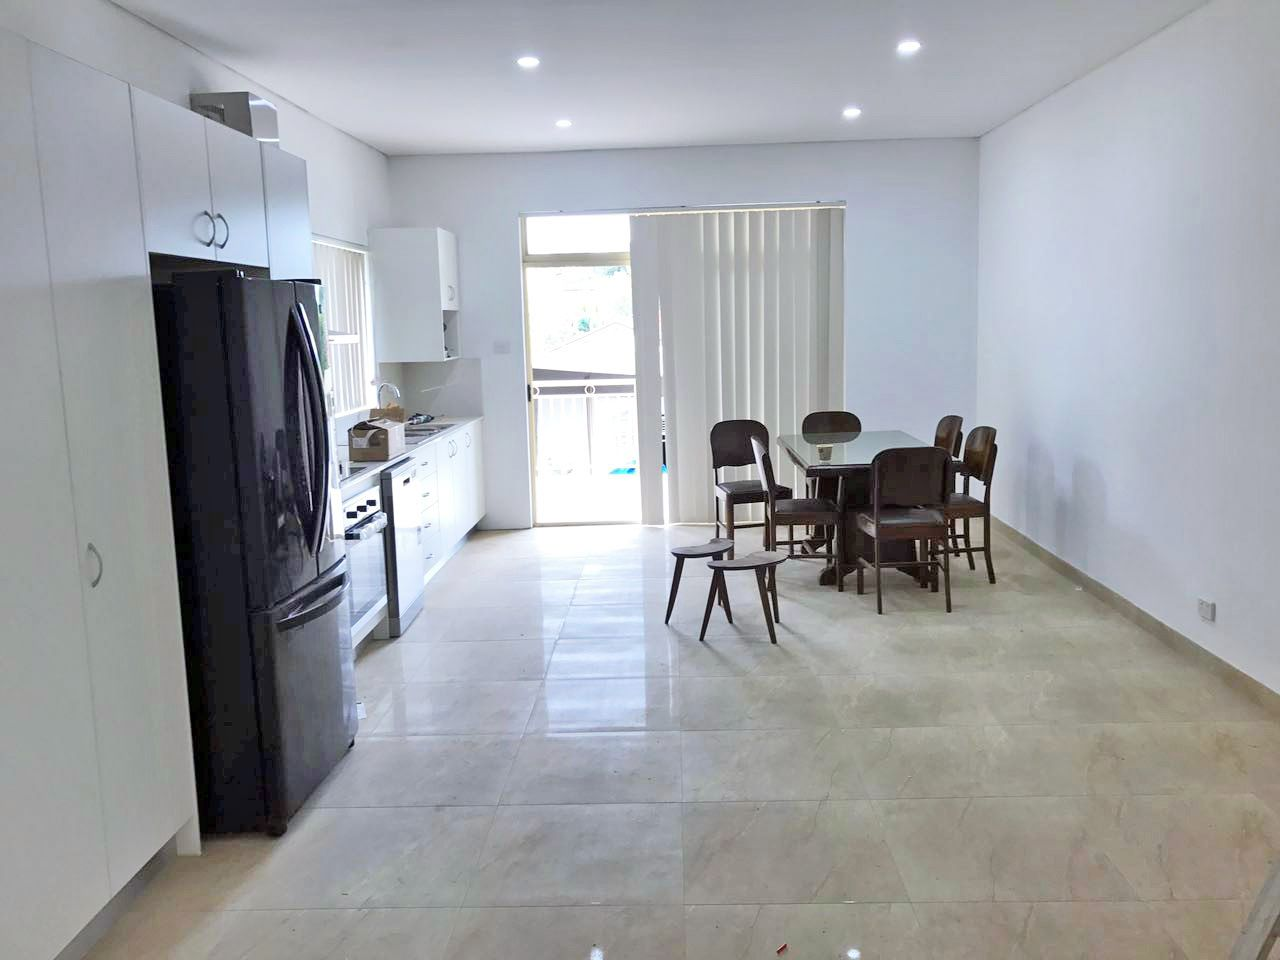 1/130 Cahors Rd, Padstow NSW 2211, Image 2